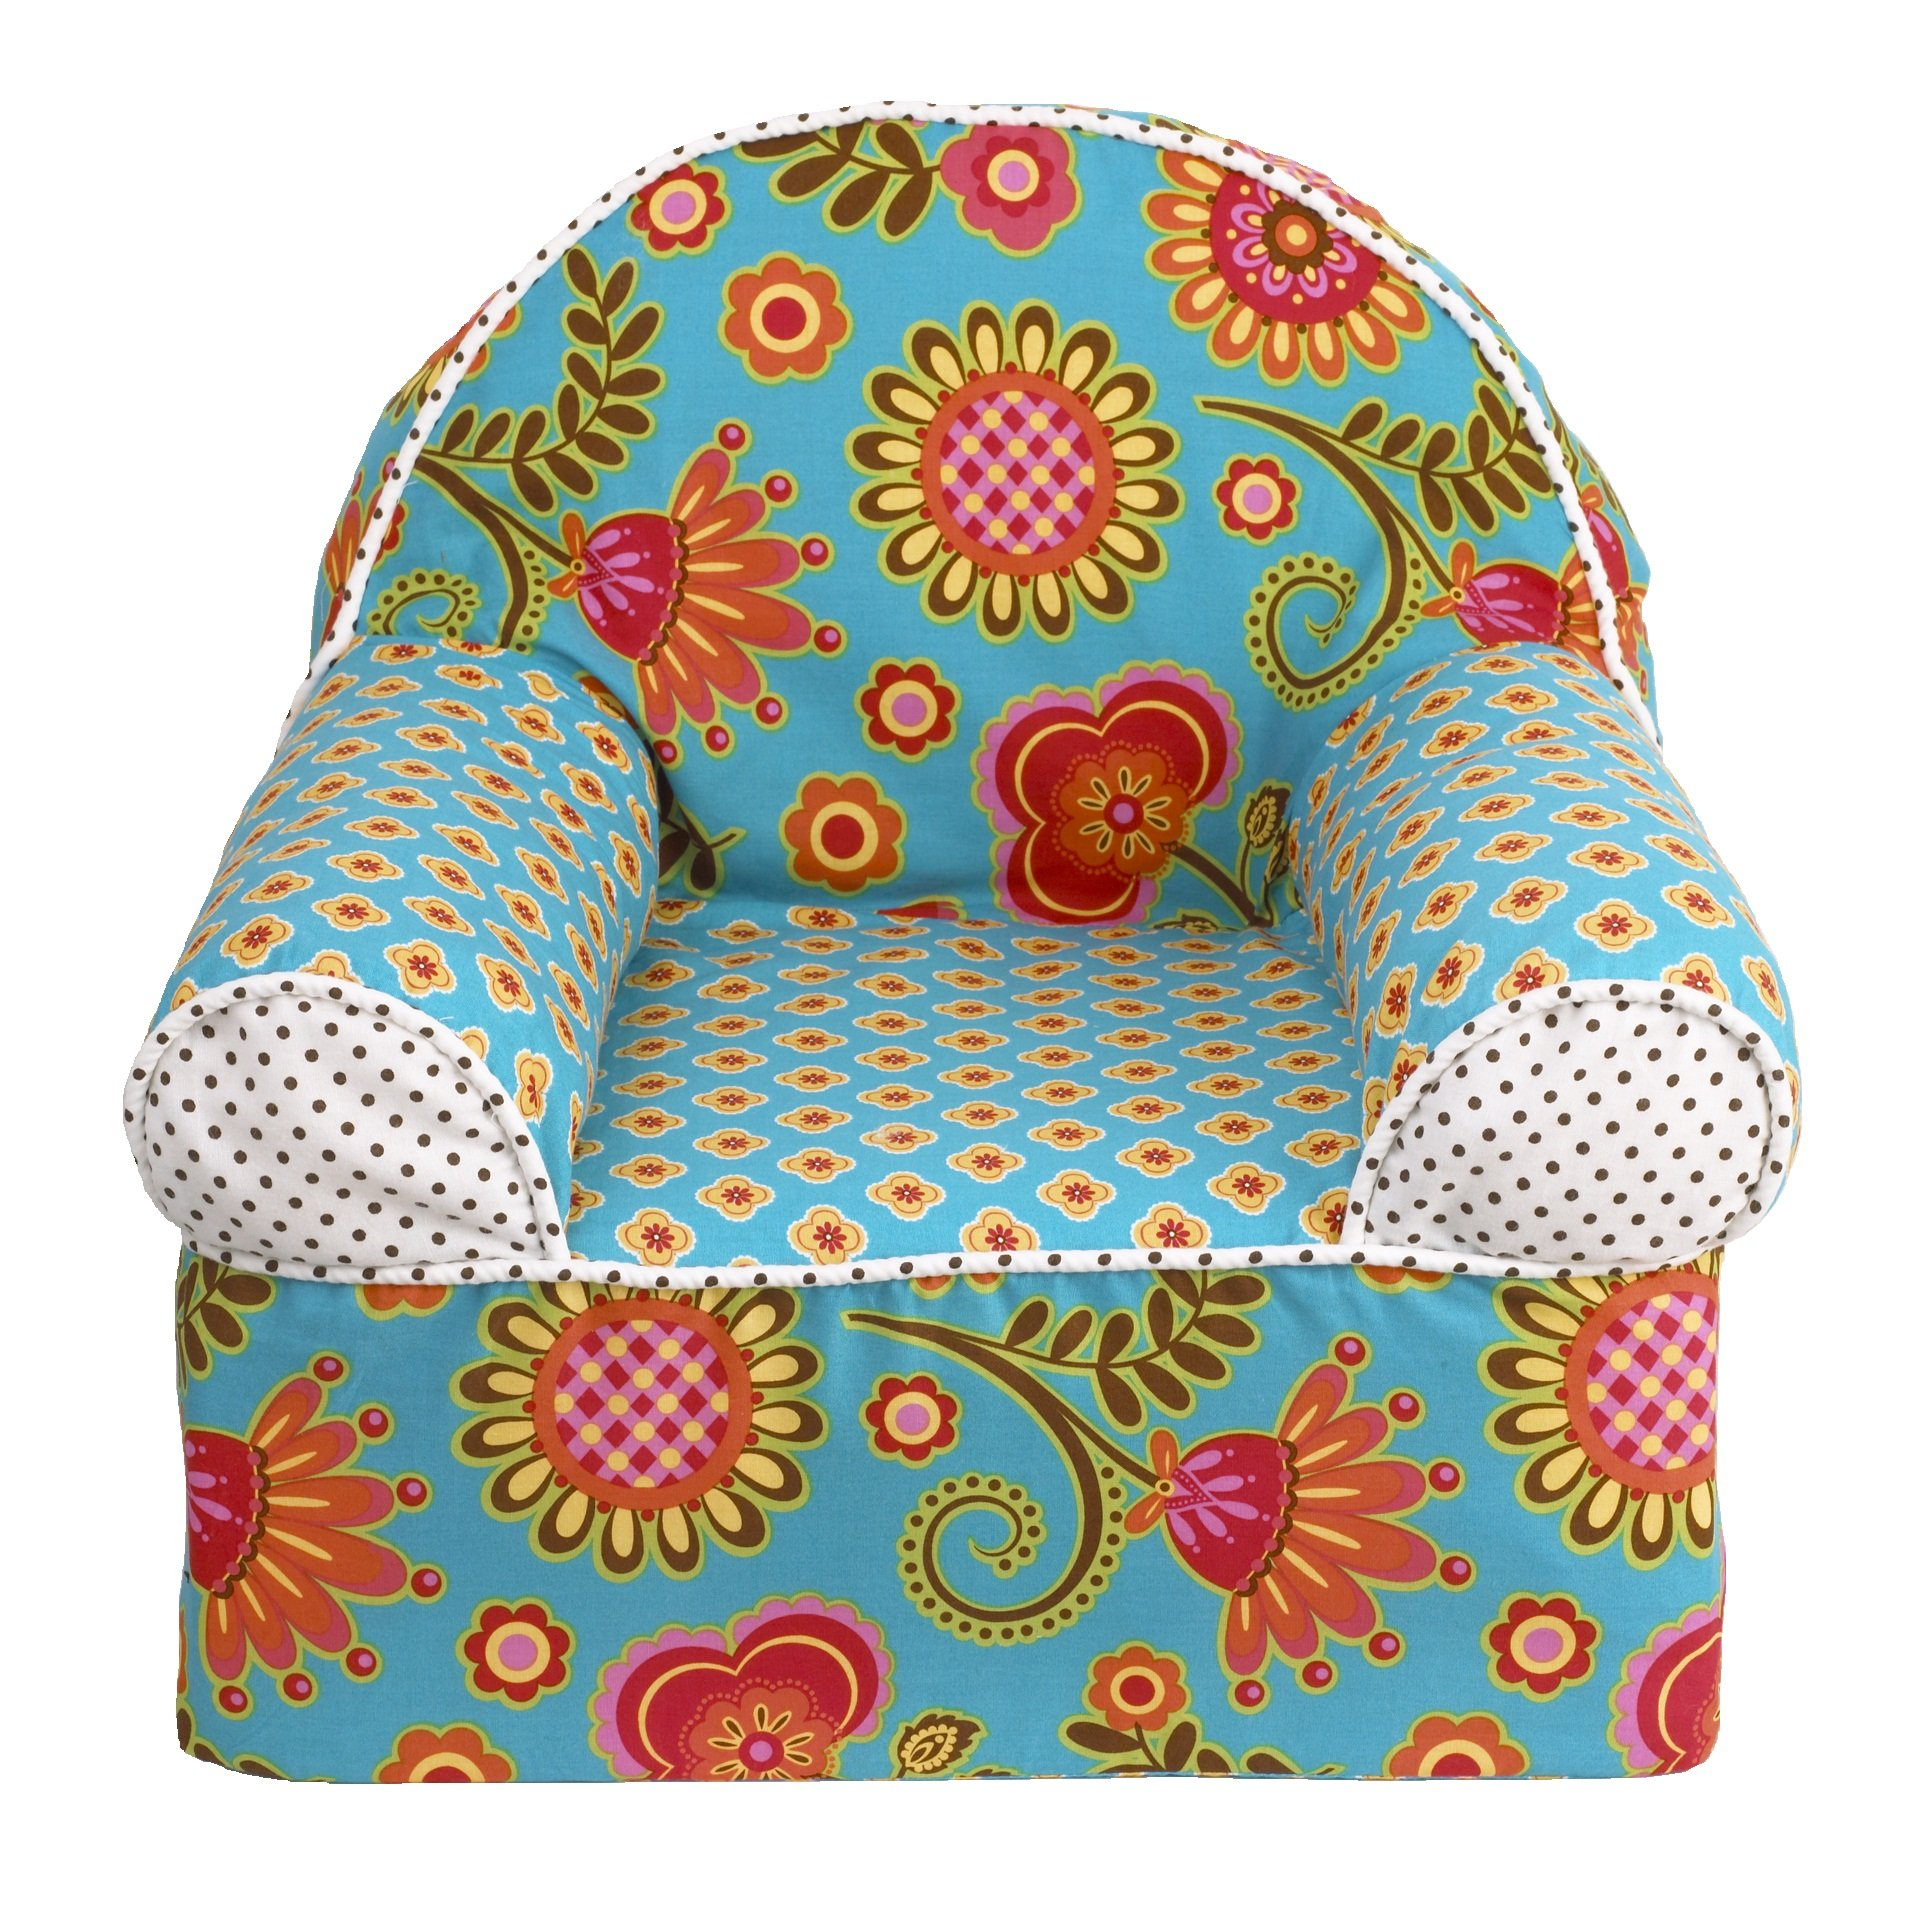 Cotton Tale Designs Gypsy Chair, Turquoise/Red/Orange/Yellow by Cotton Tale Designs